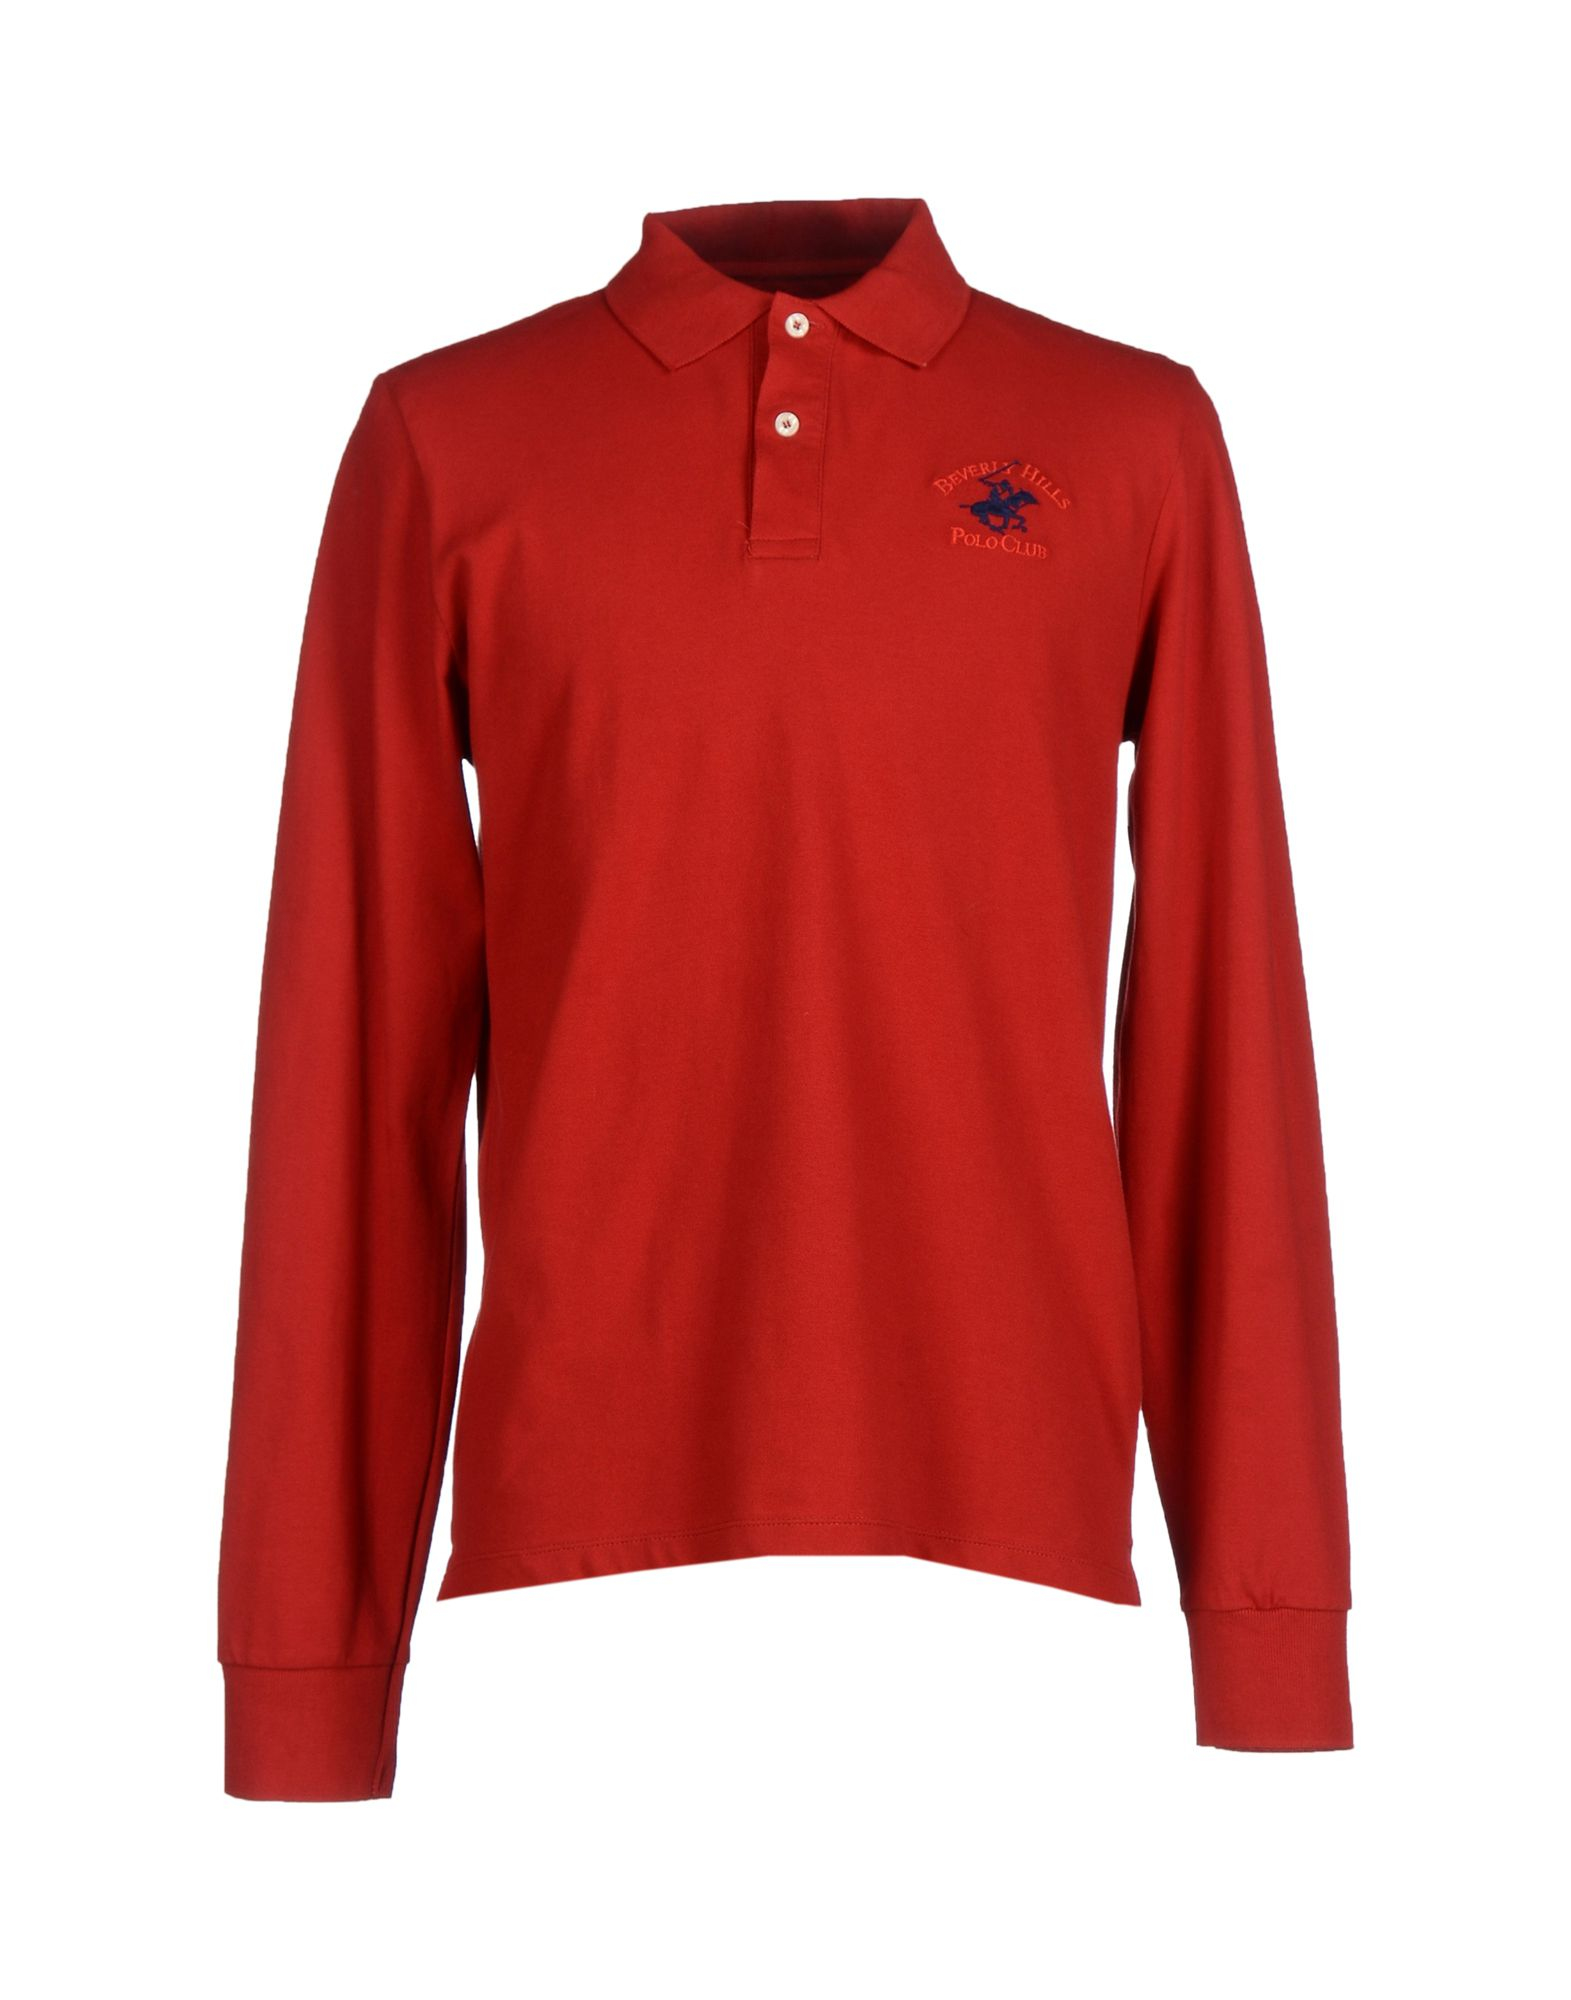 Beverly Hills Polo Club Polo Shirt In Red For Men Lyst